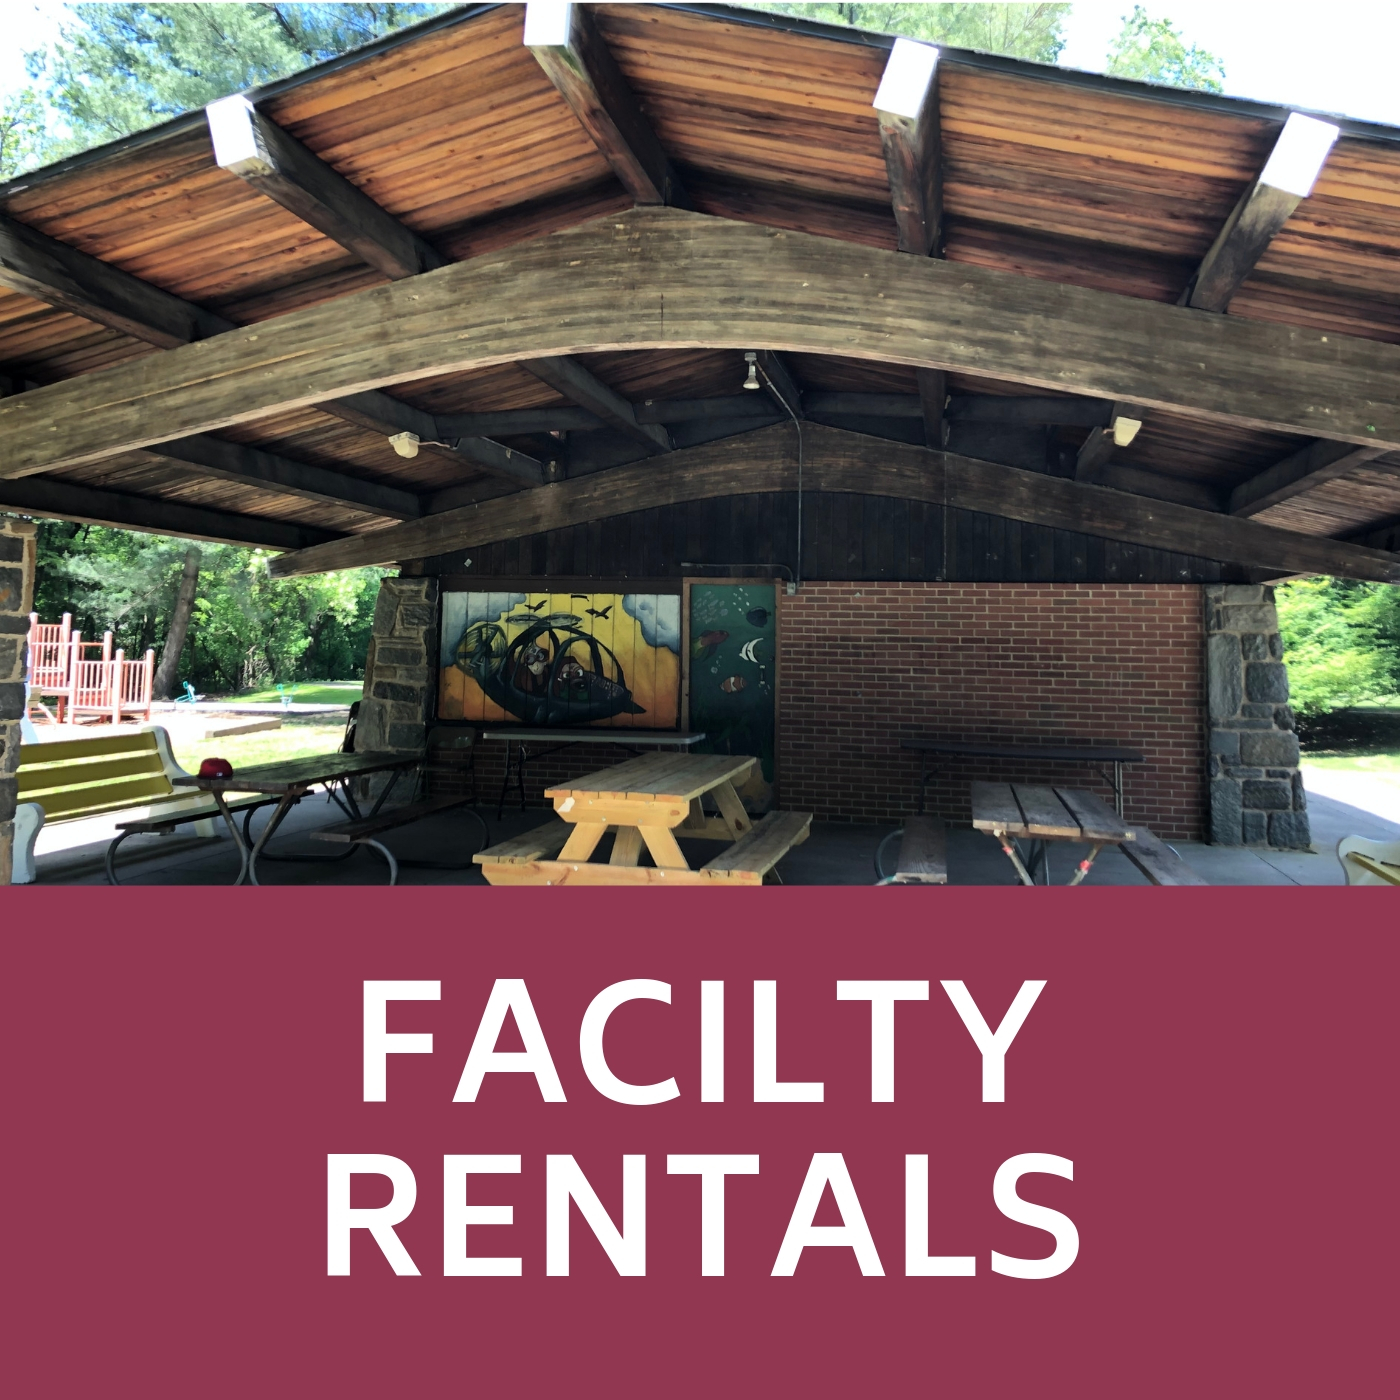 Facility Rentals Icon that links to https://apm.activecommunities.com/abingtonparksandrec/Facility_Search